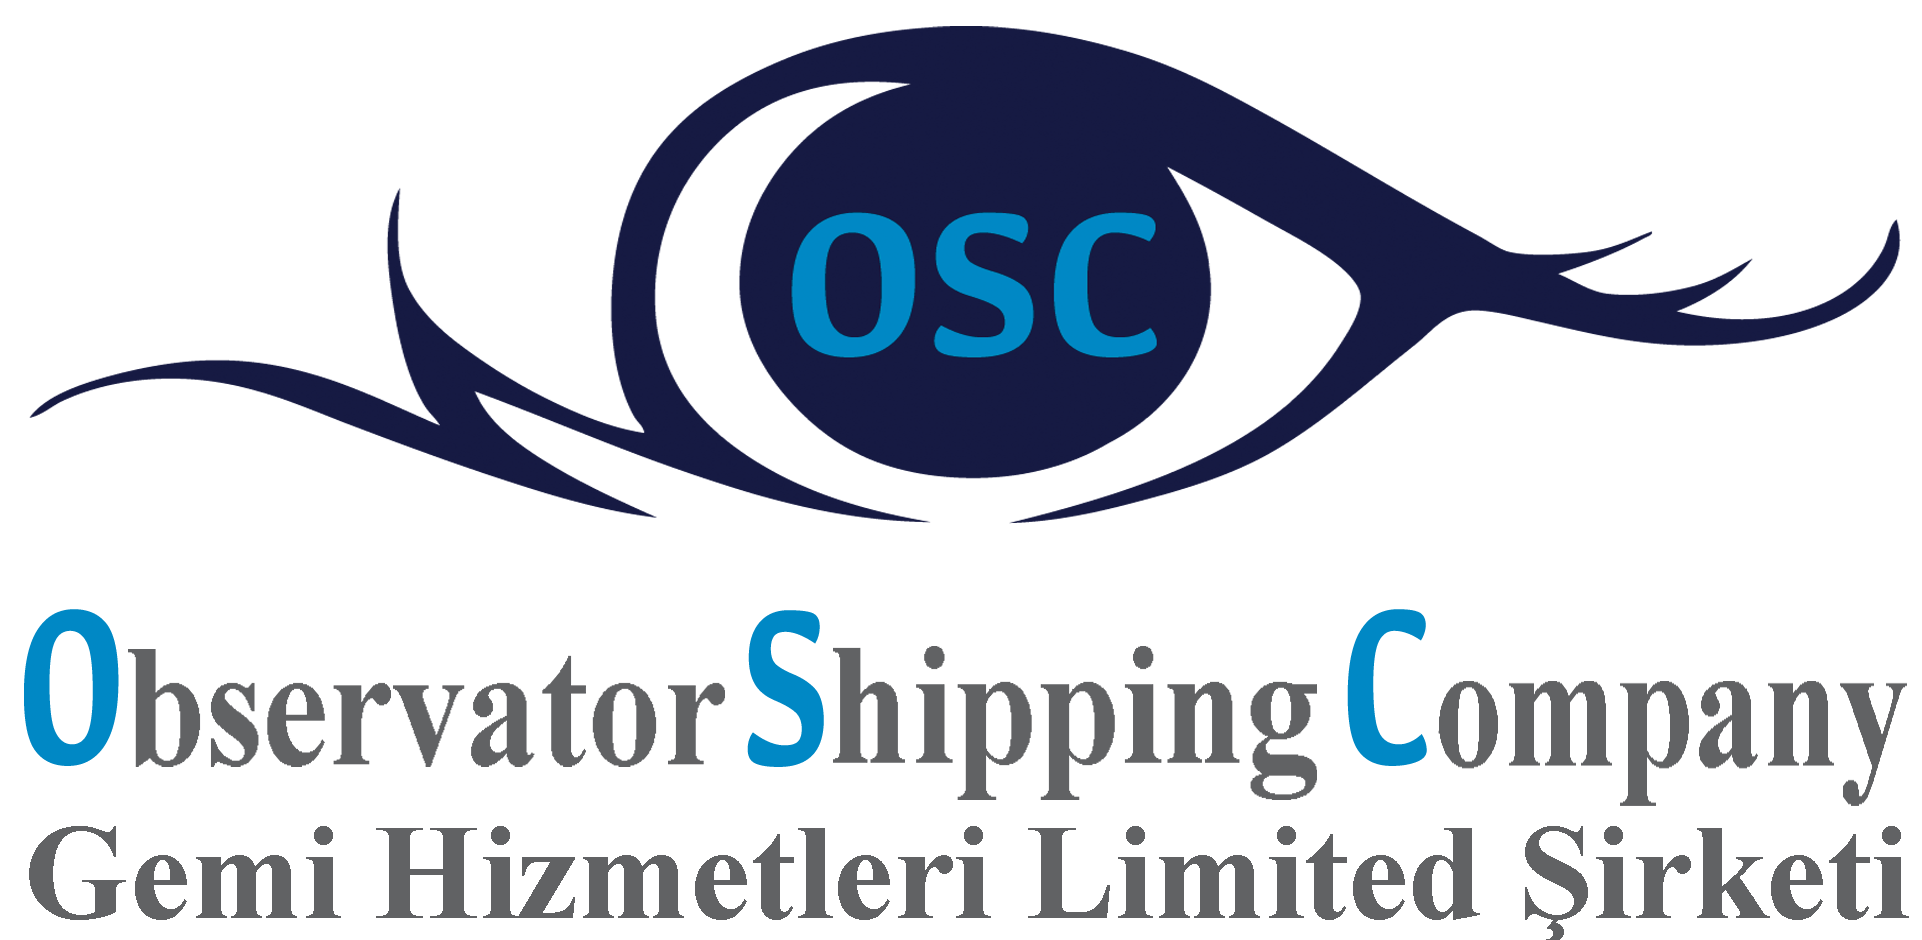 Observator Shipping Company